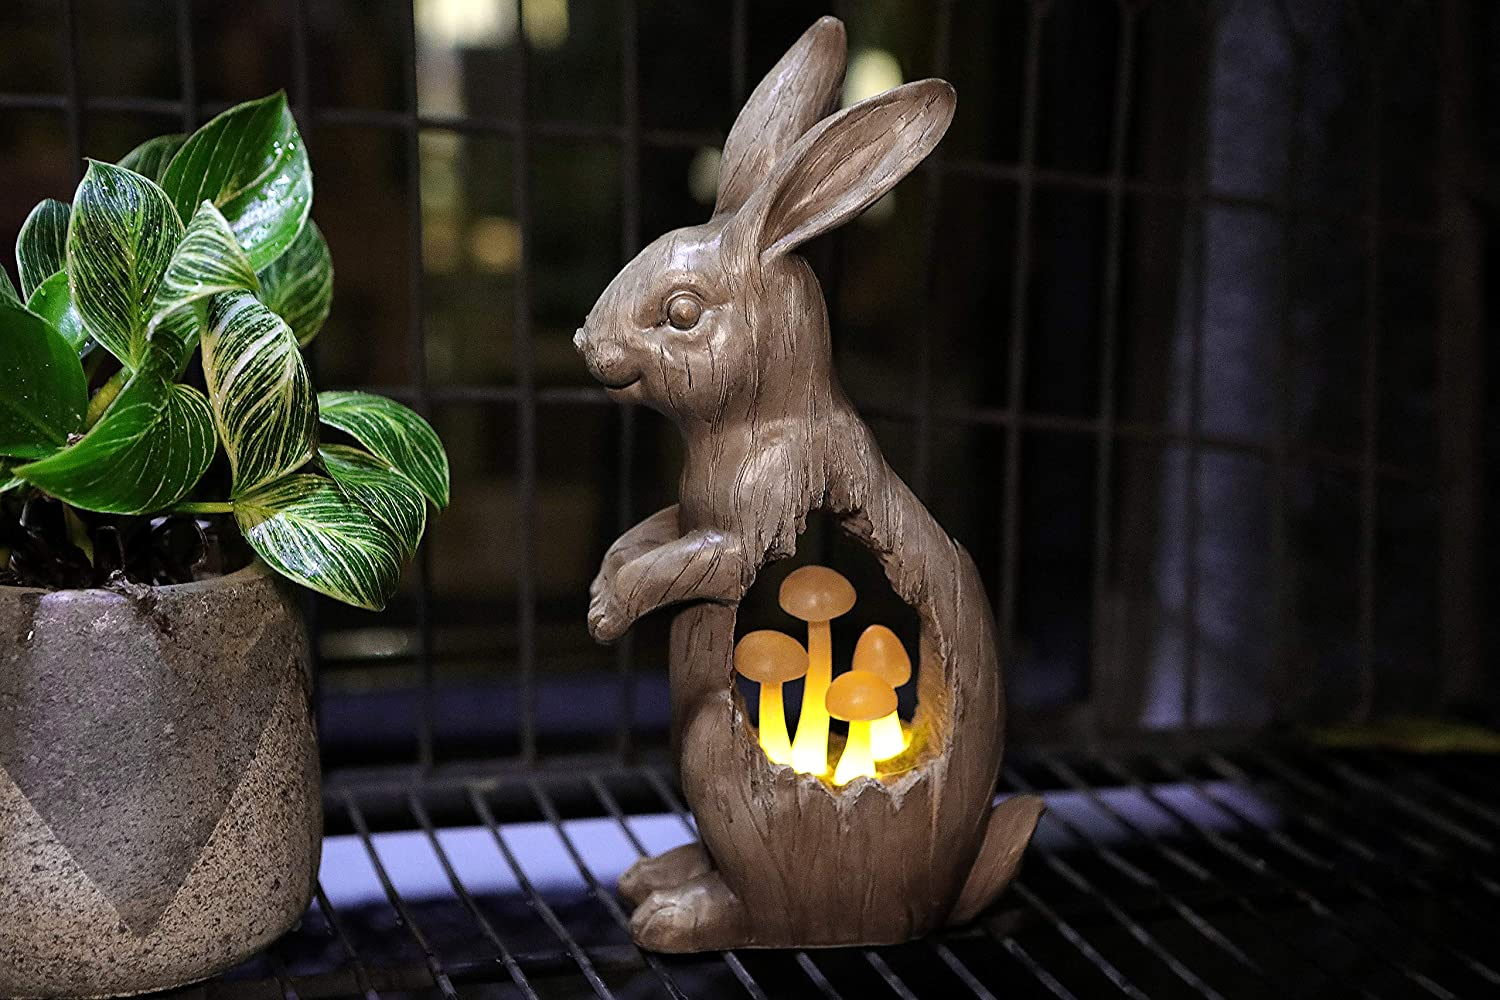 "Joyathome Solar Garden Bunny Statues Rabbit with Mushroom Figurine, Solar Powered Resin Animal Sculpture Outdoor Lights for Patio Lawn,Yard ATR Garden Sculpture Decorations,11.7""H"